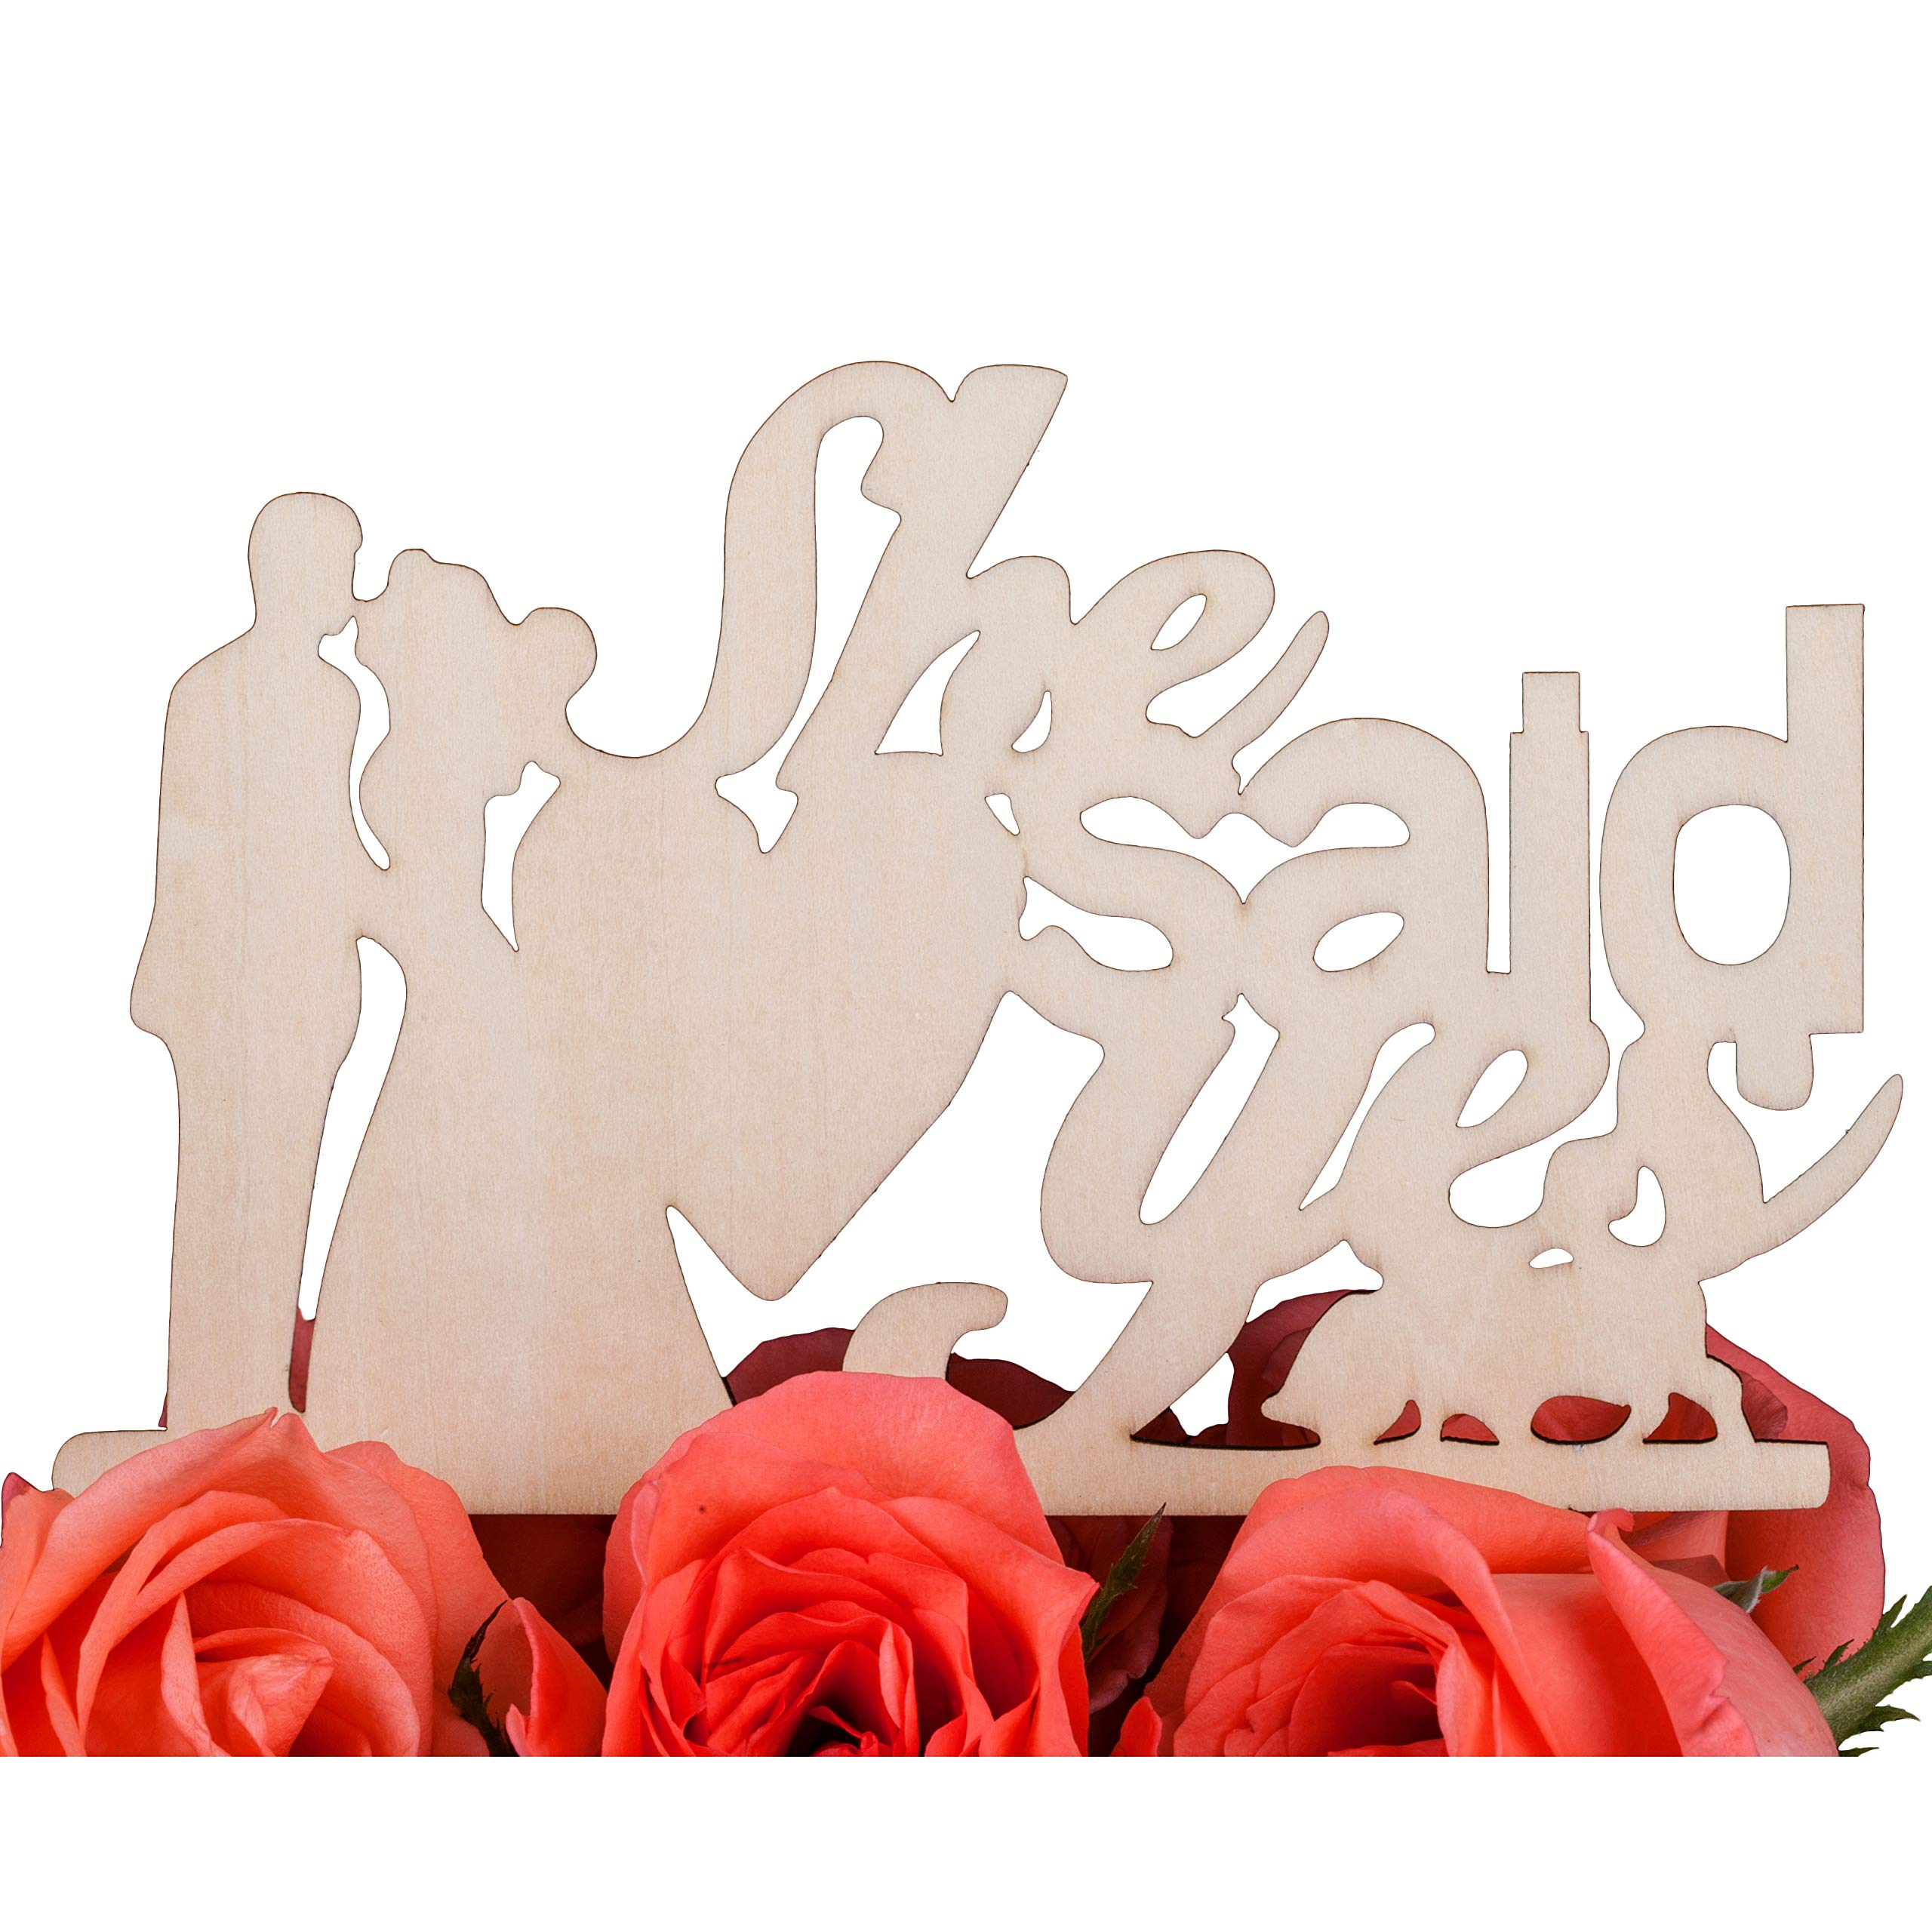 LOVENJOY - Gift Box - She Said Yes Cake Topper Rustic Wood for Engagement Party Decoration(5.9-inch)